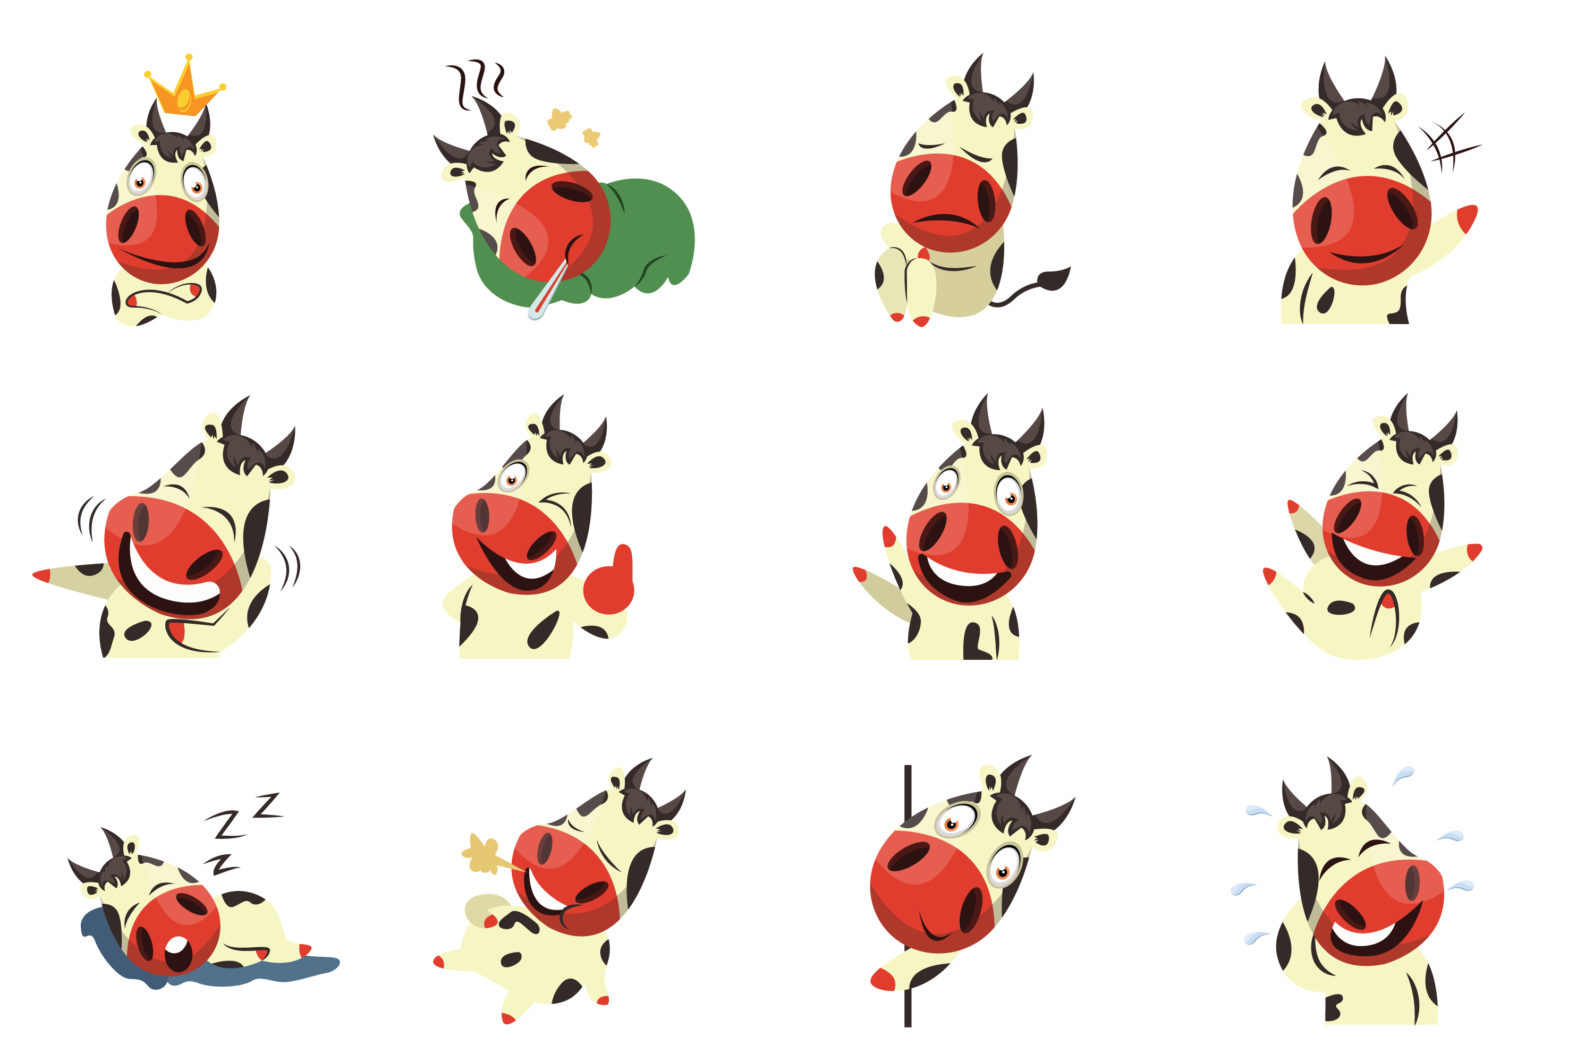 12x Cow Emotion Collection illustration. - 71 Cow Emotion Collection 12x ALL EXAMPLES scaled -